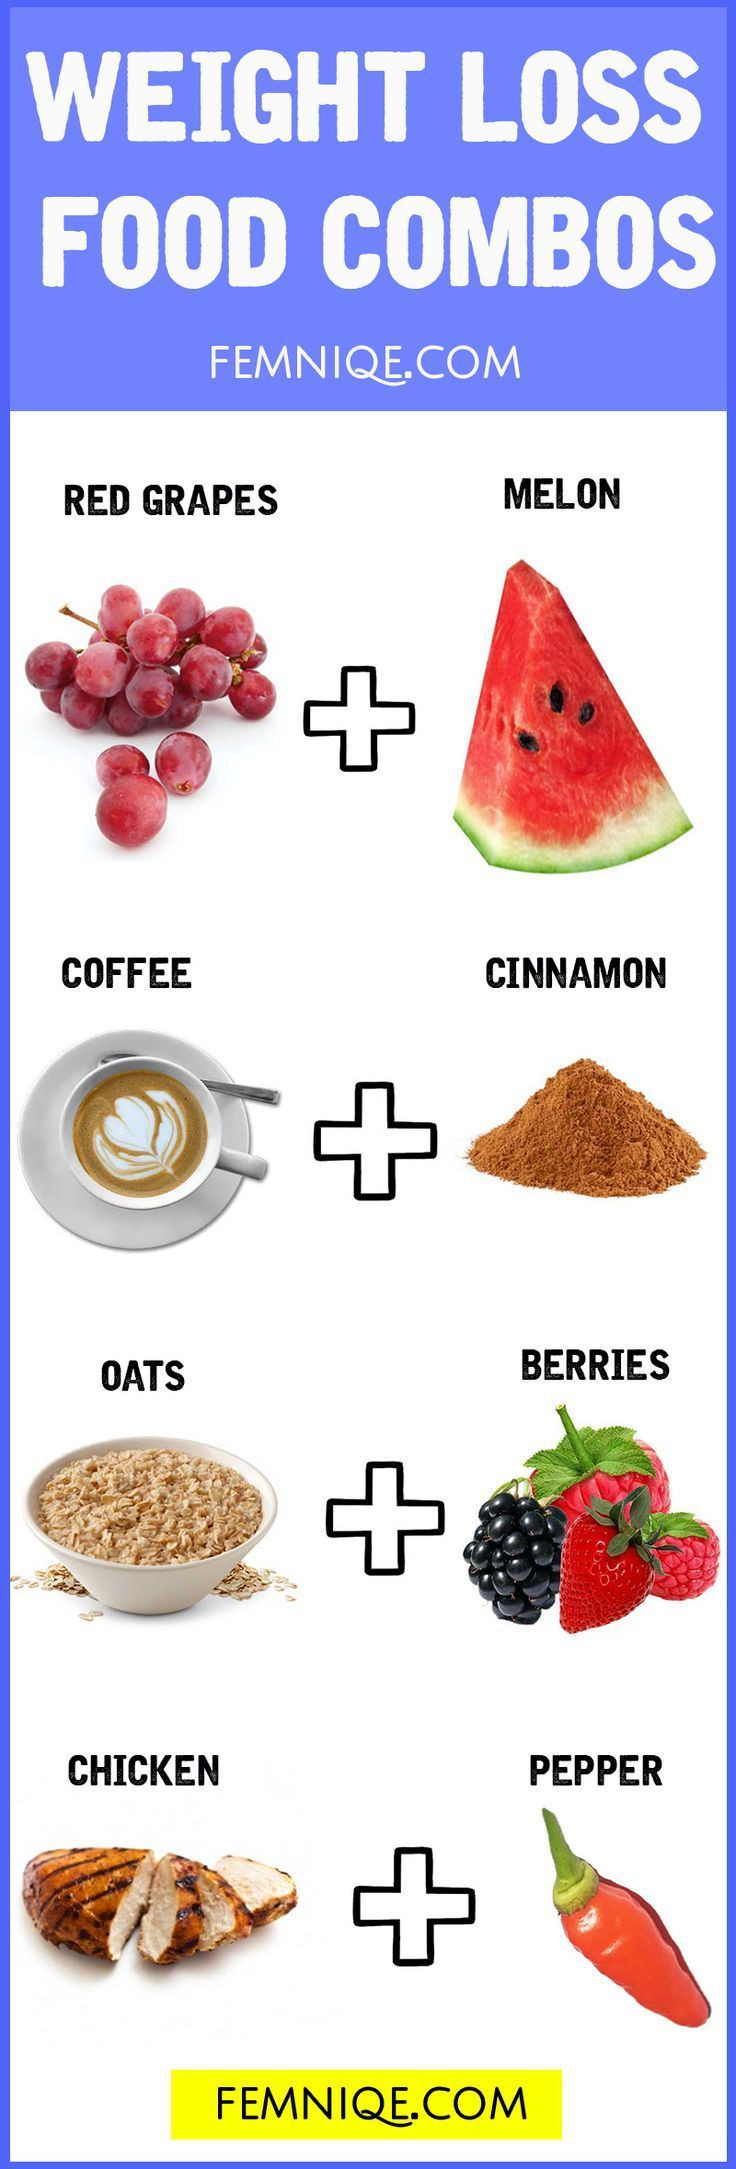 Fat Burning Foods Losing Weight 10 Pounds  Pin on Clean Eating & Nutrition